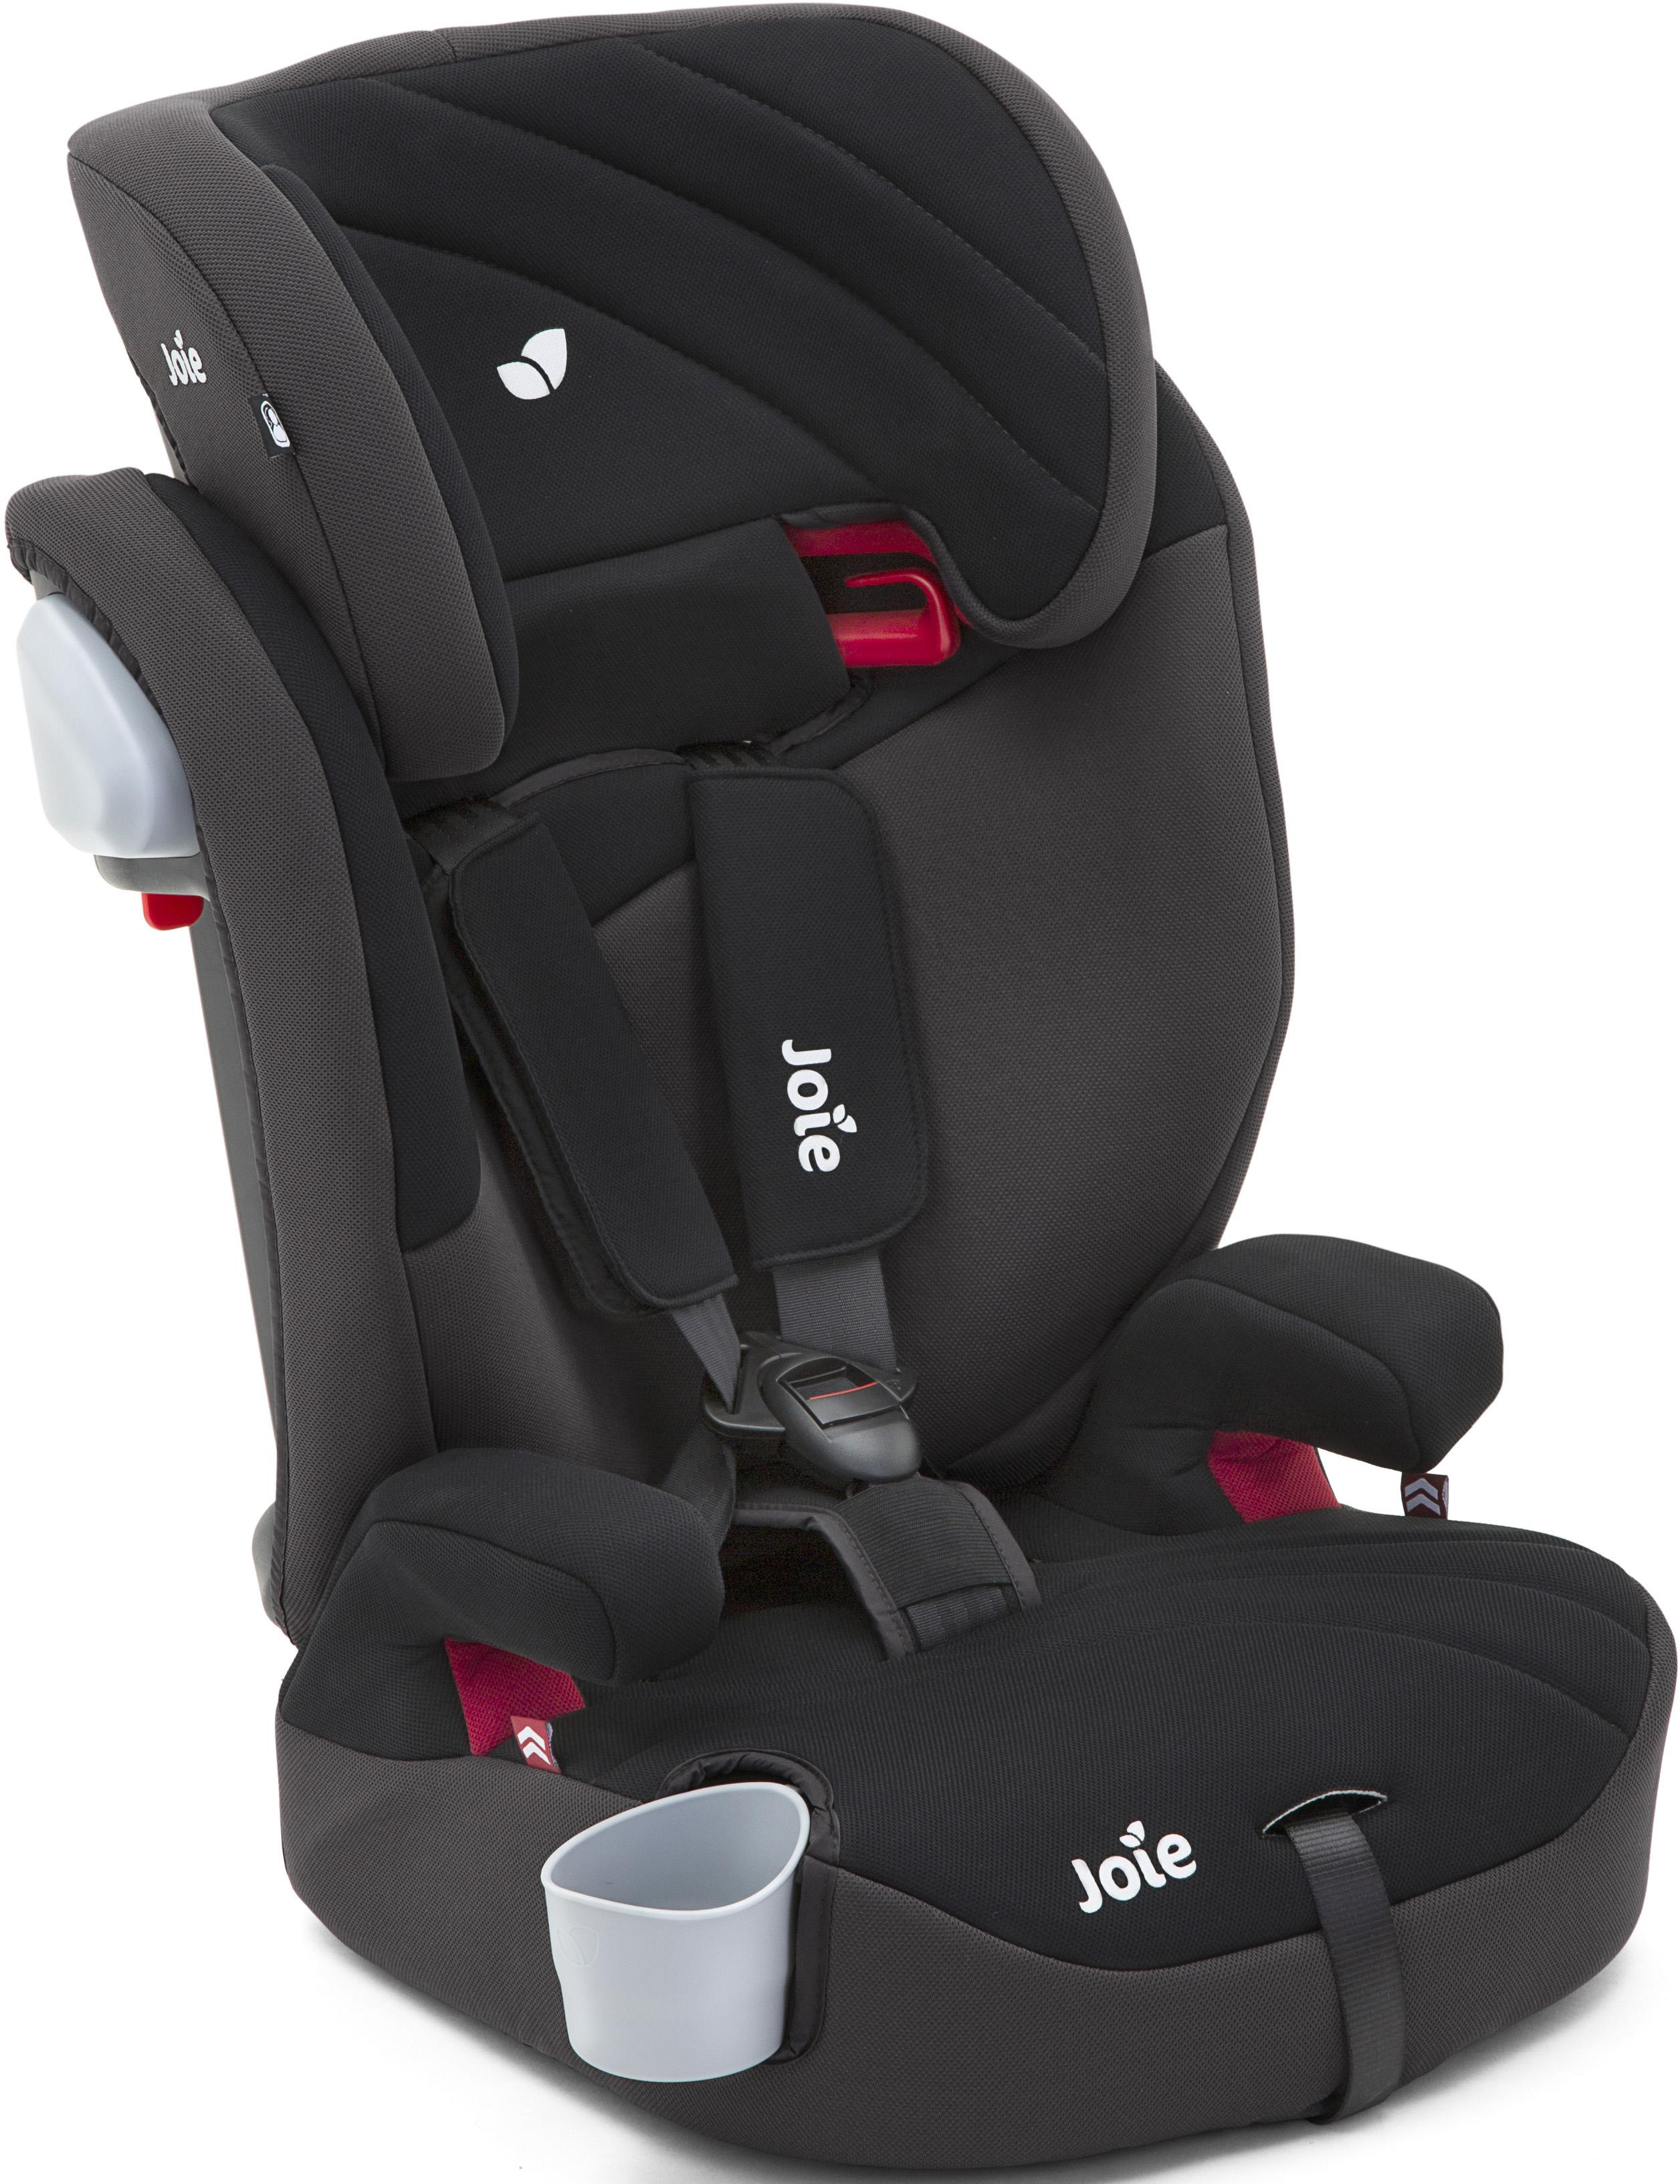 Joie Elevate Car Seat – Two Tone Black